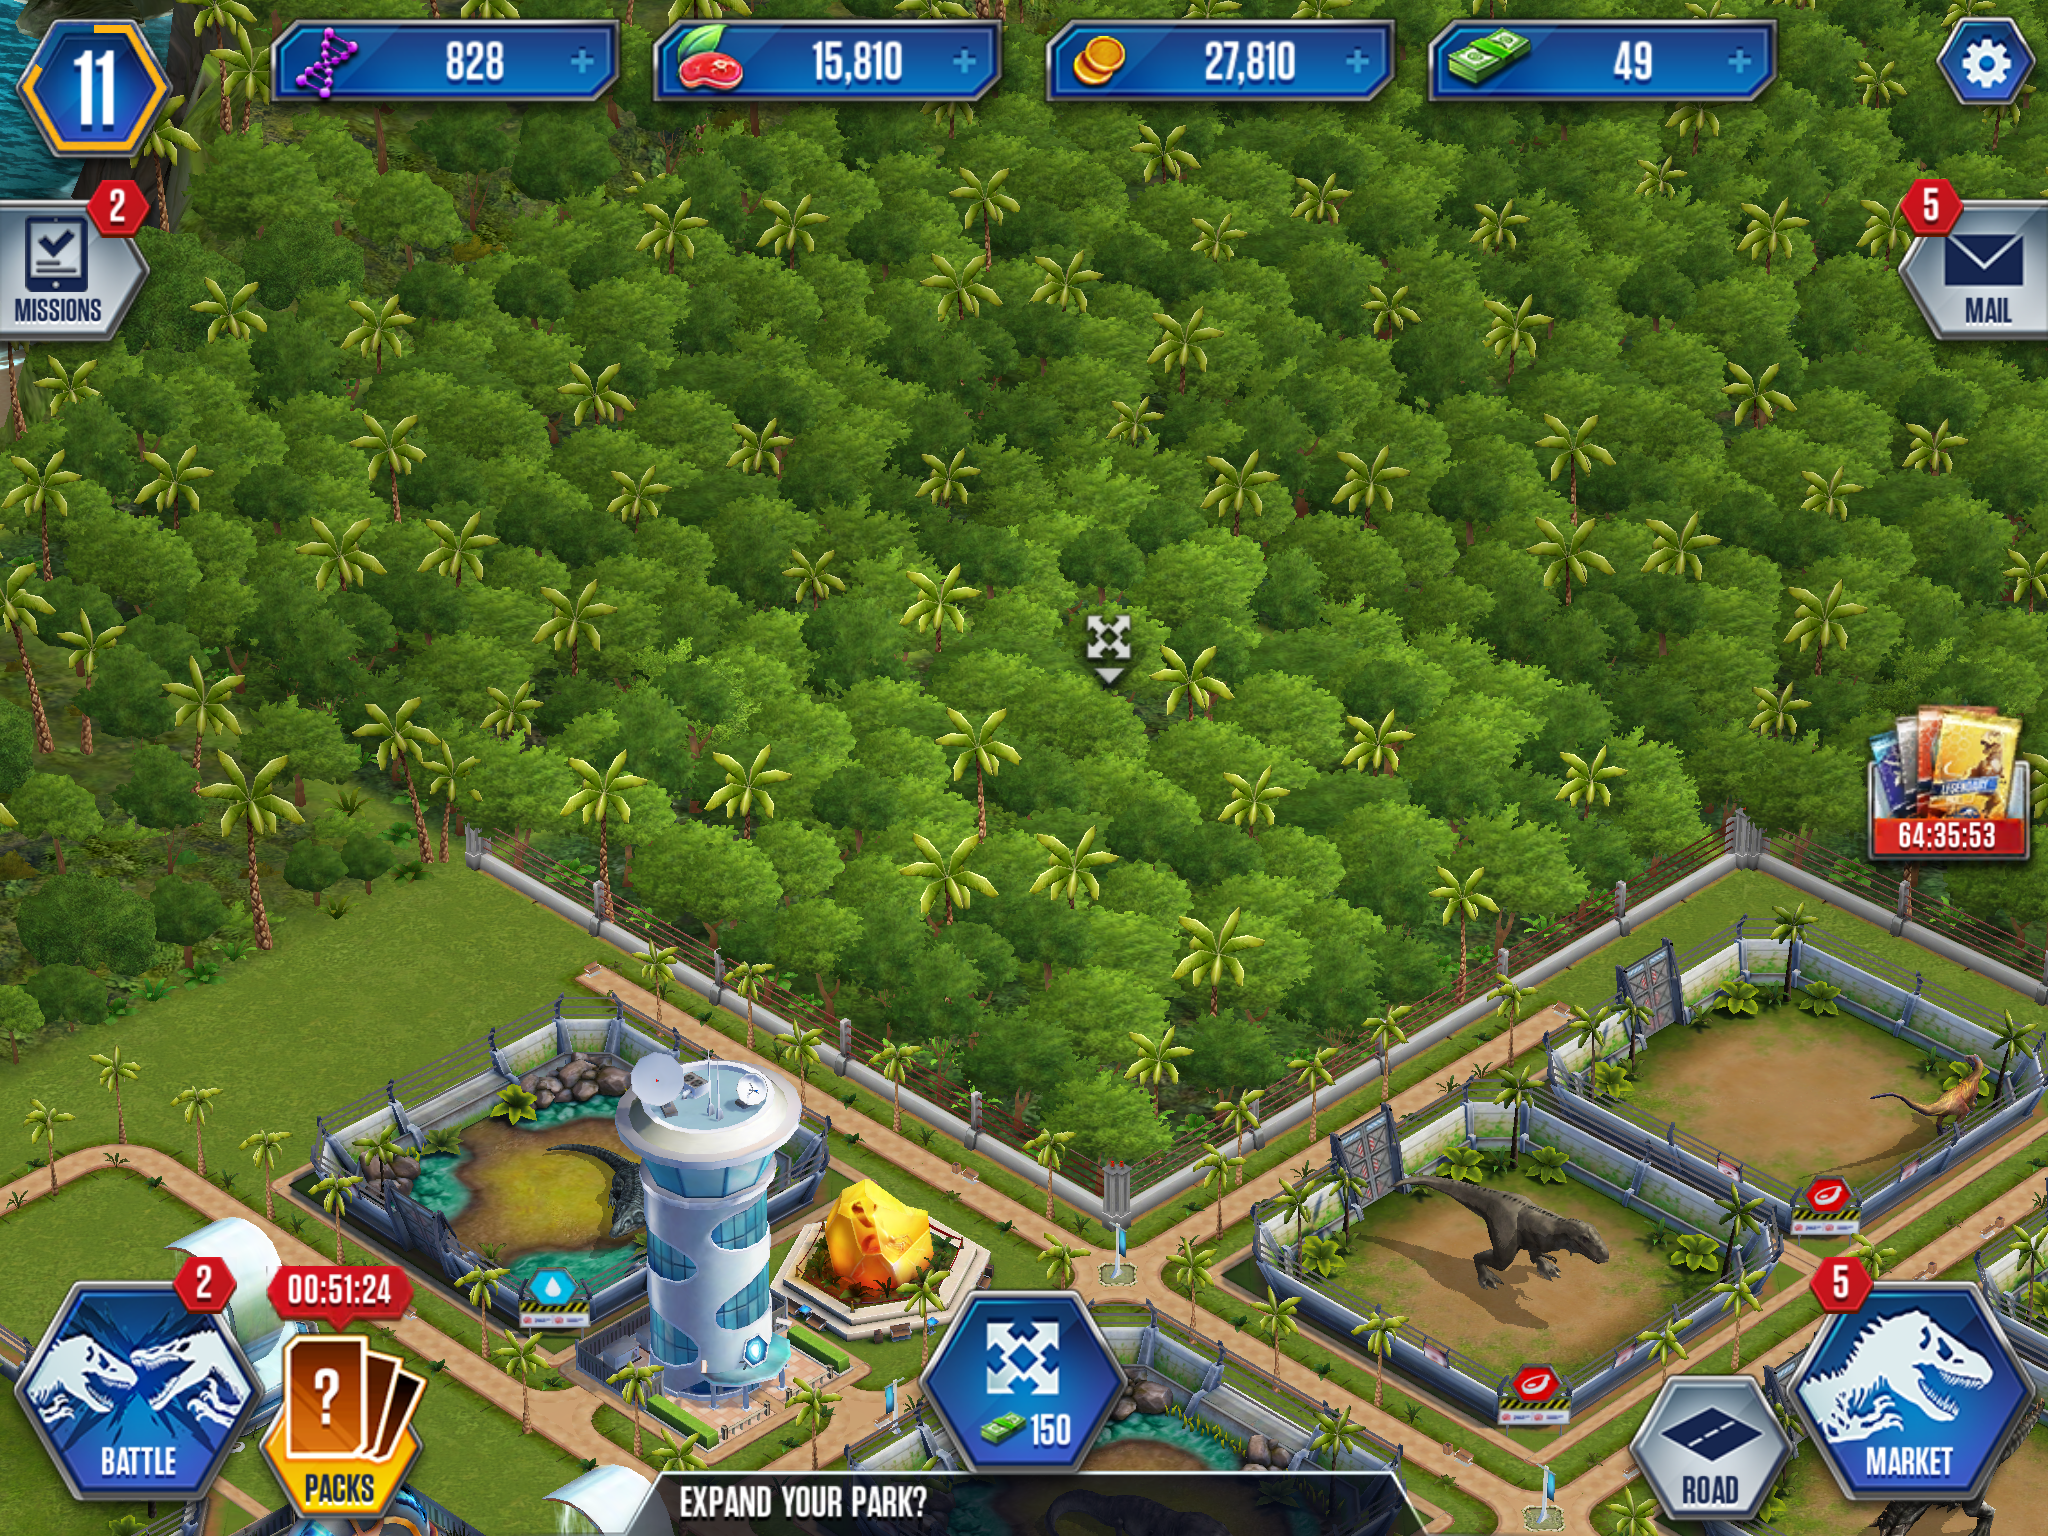 Jurassic World: The Game Tips, Hints And Strategies